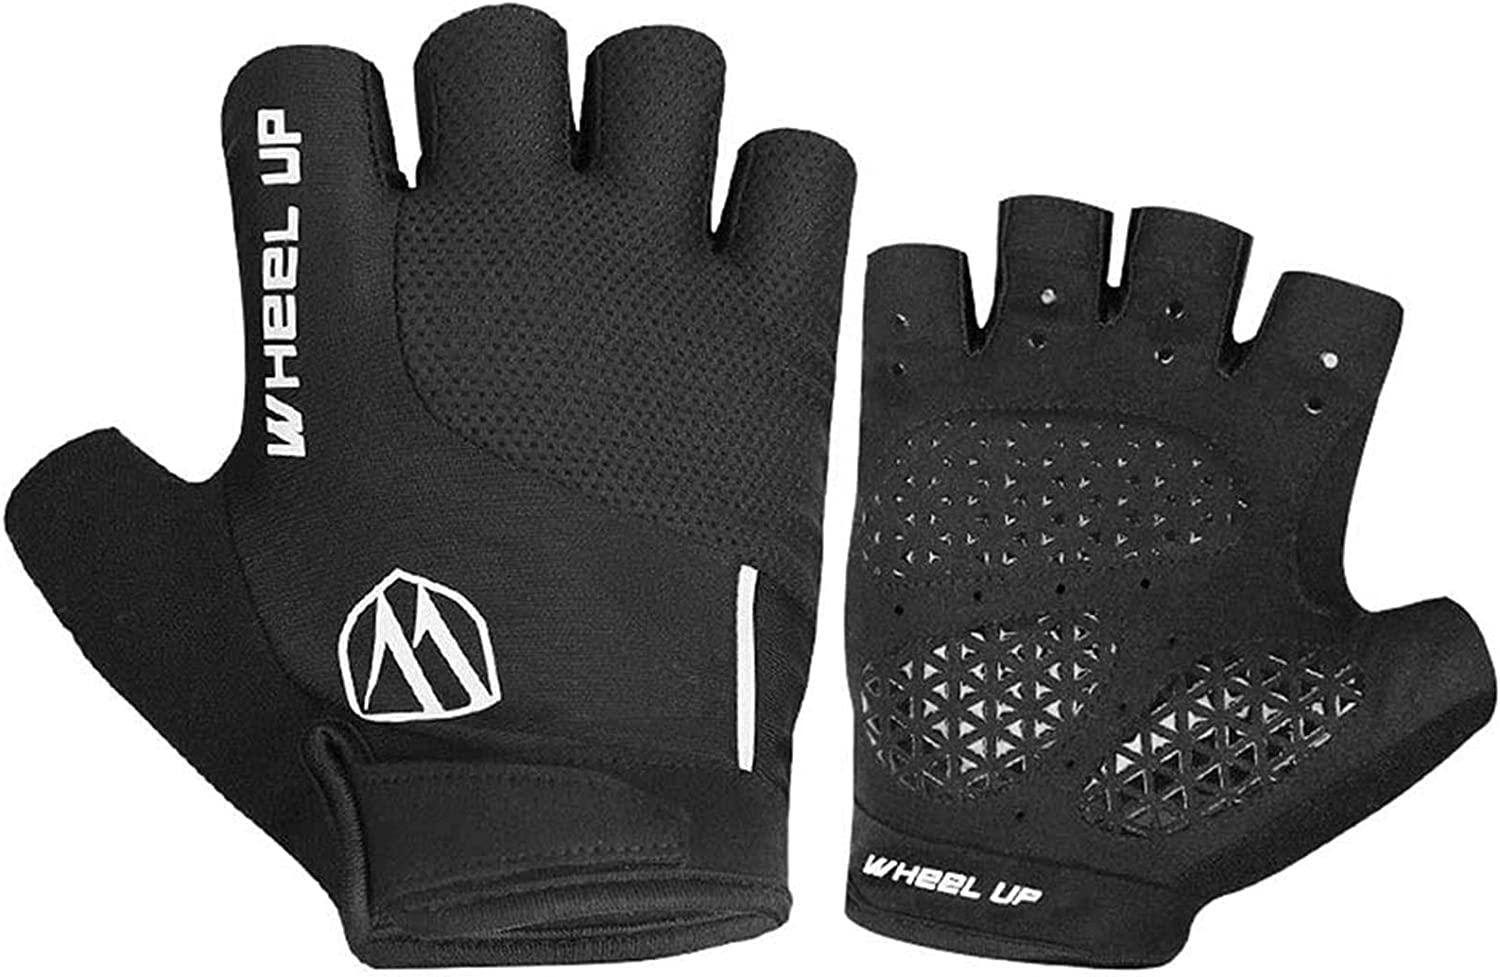 Sport Max 42% OFF Gloves All stores are sold Cycling Bike Men Biking for Wo